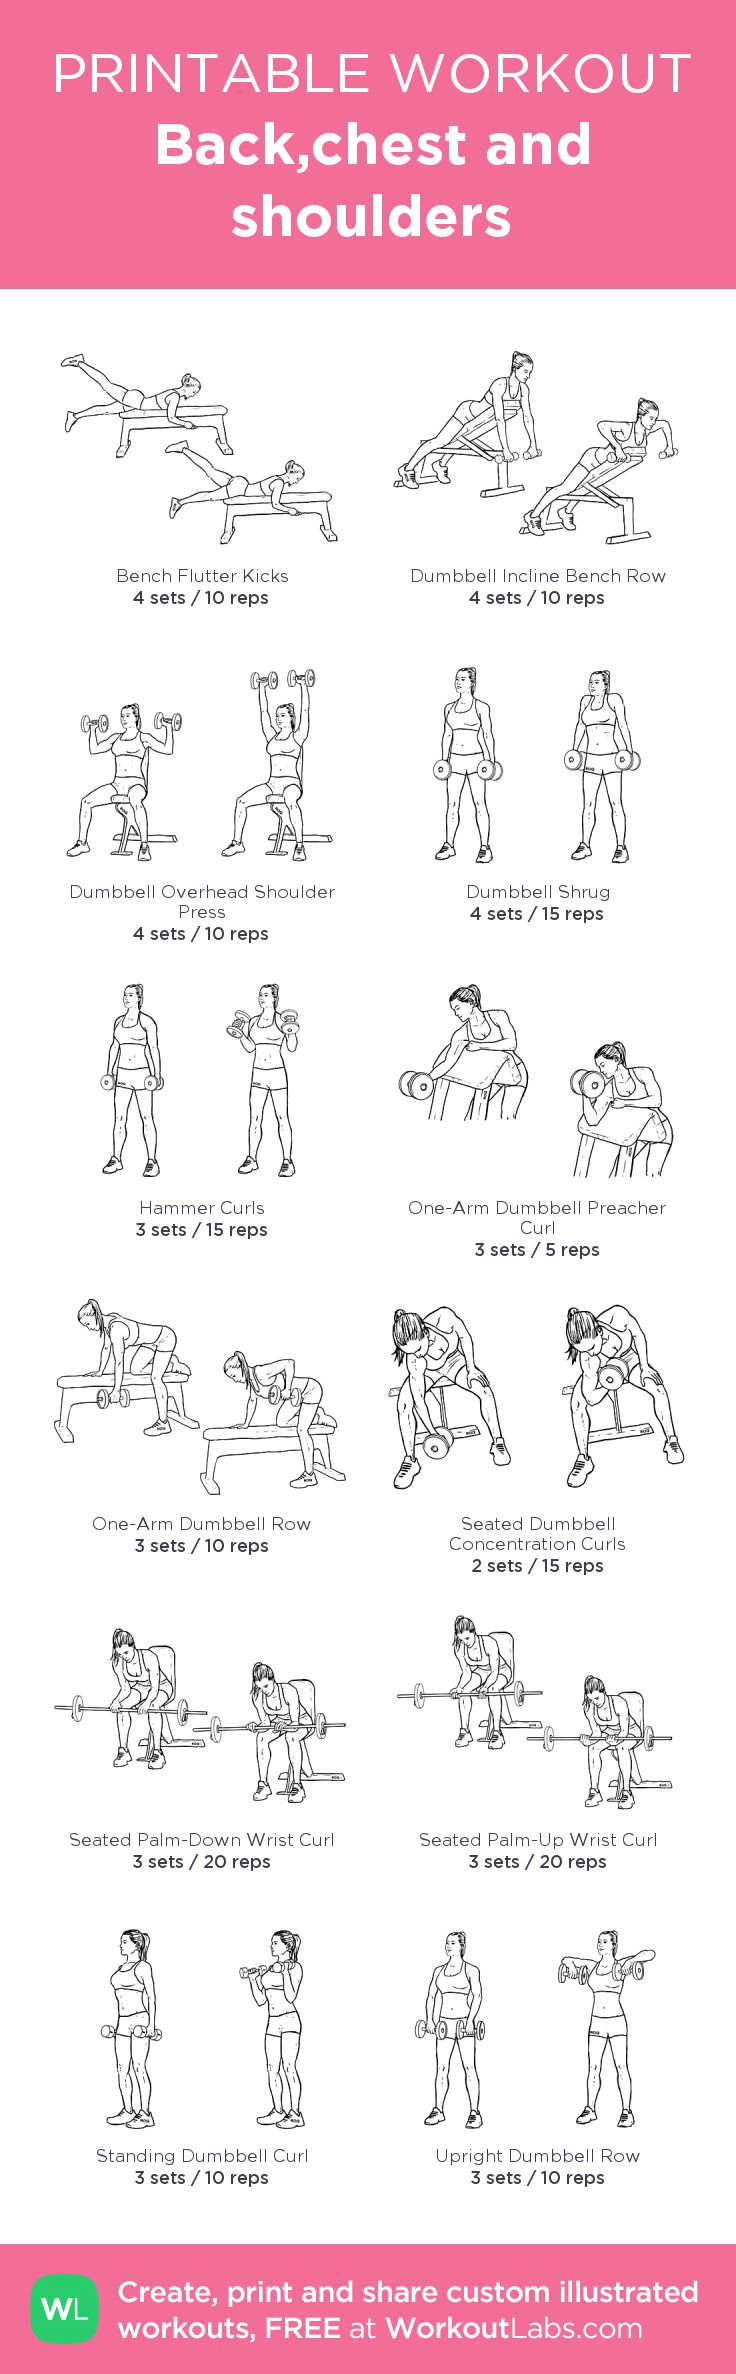 Back,chest and shoulders:my visual workout created at WorkoutLabs.com • Click through to customize and download as a FREE PDF! #customworkout